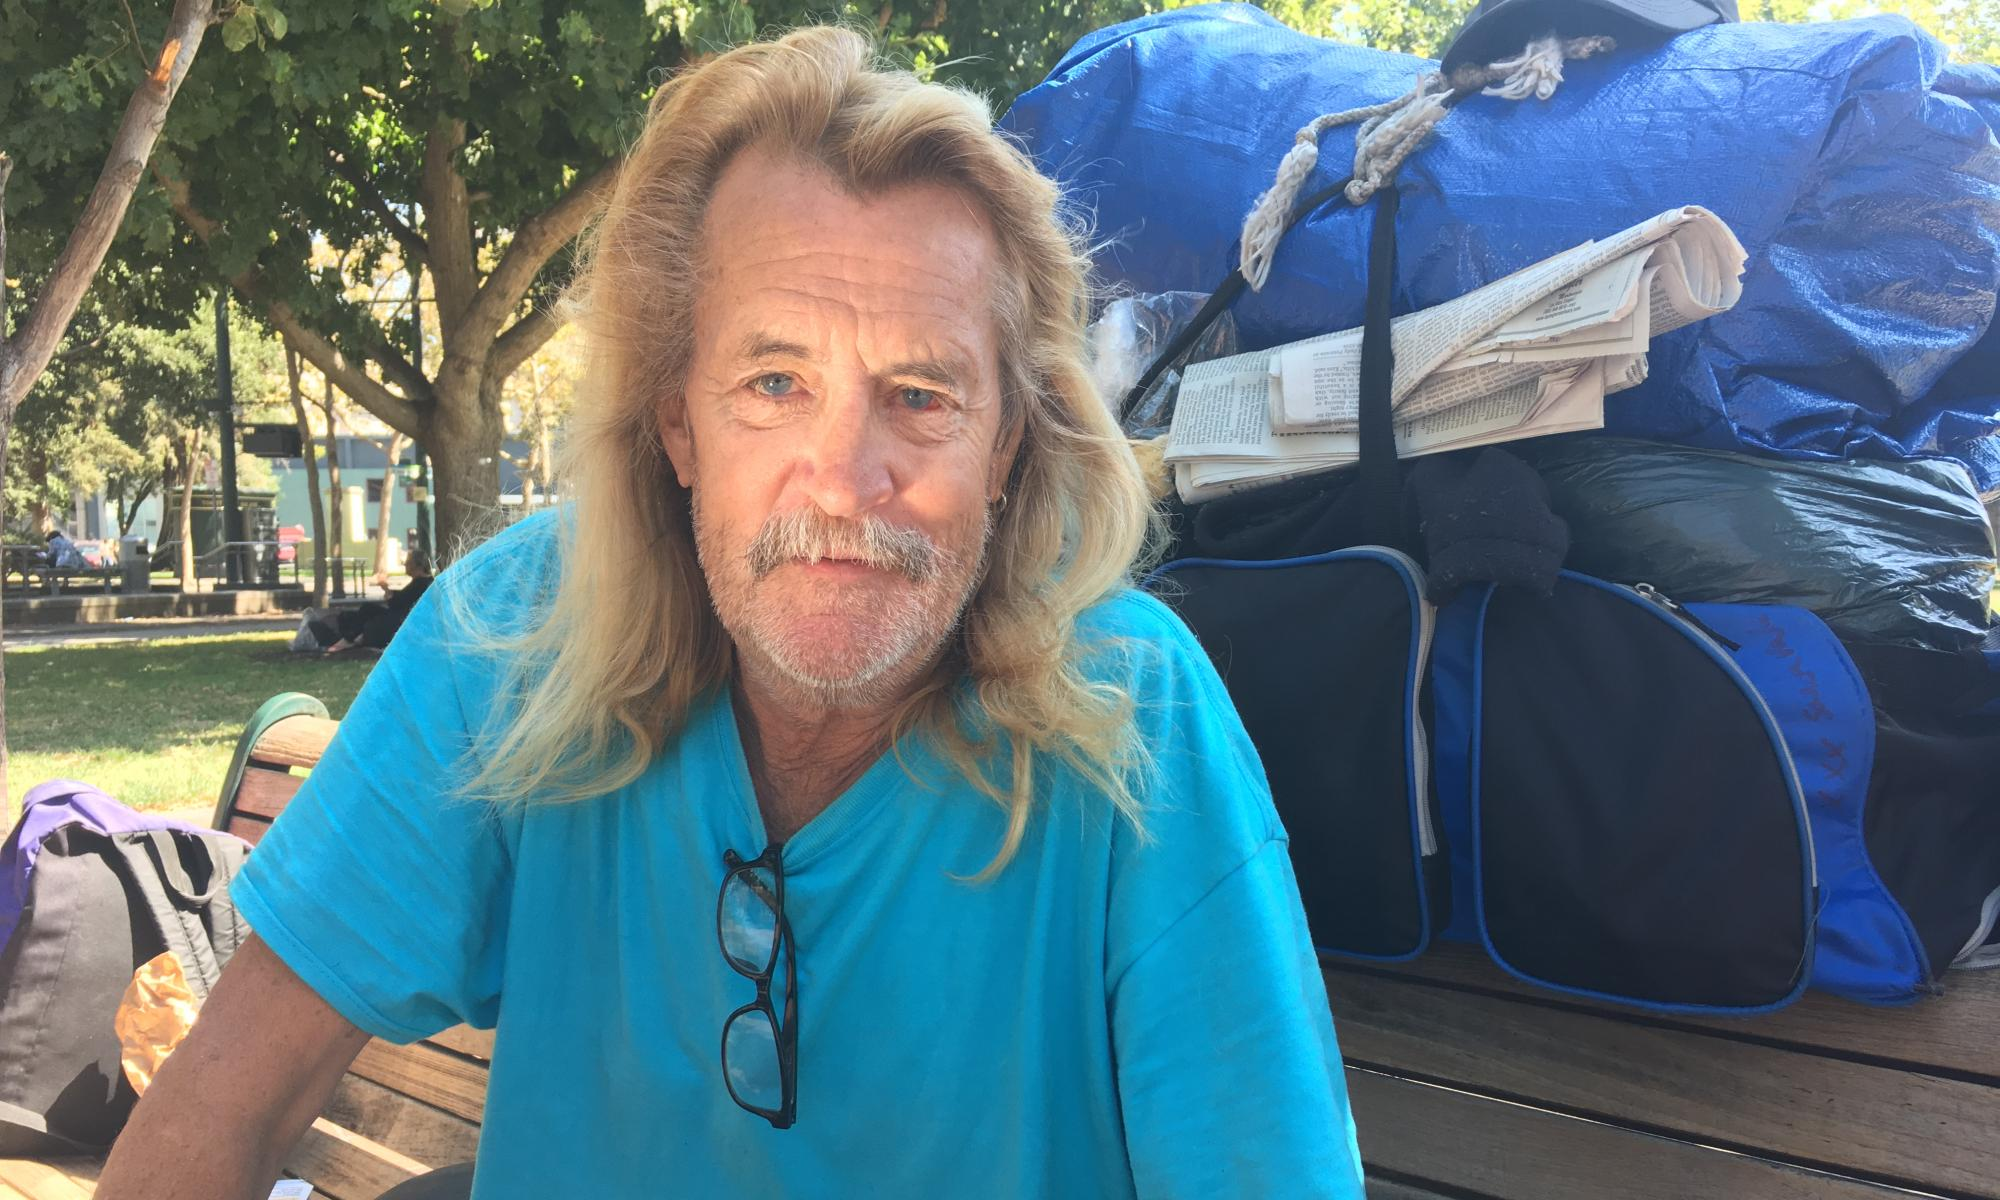 Terry Hammer, a formerly homeless resident of San Jose.